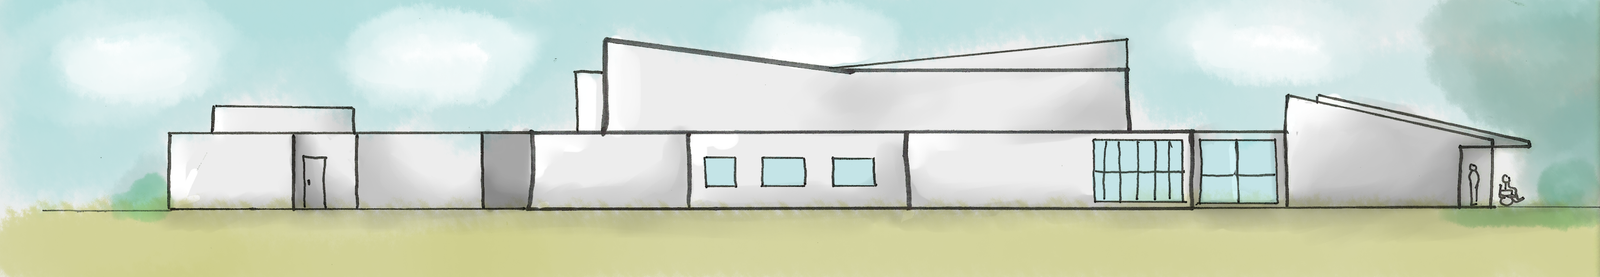 Hospice East Elevation by the-scowling-cat